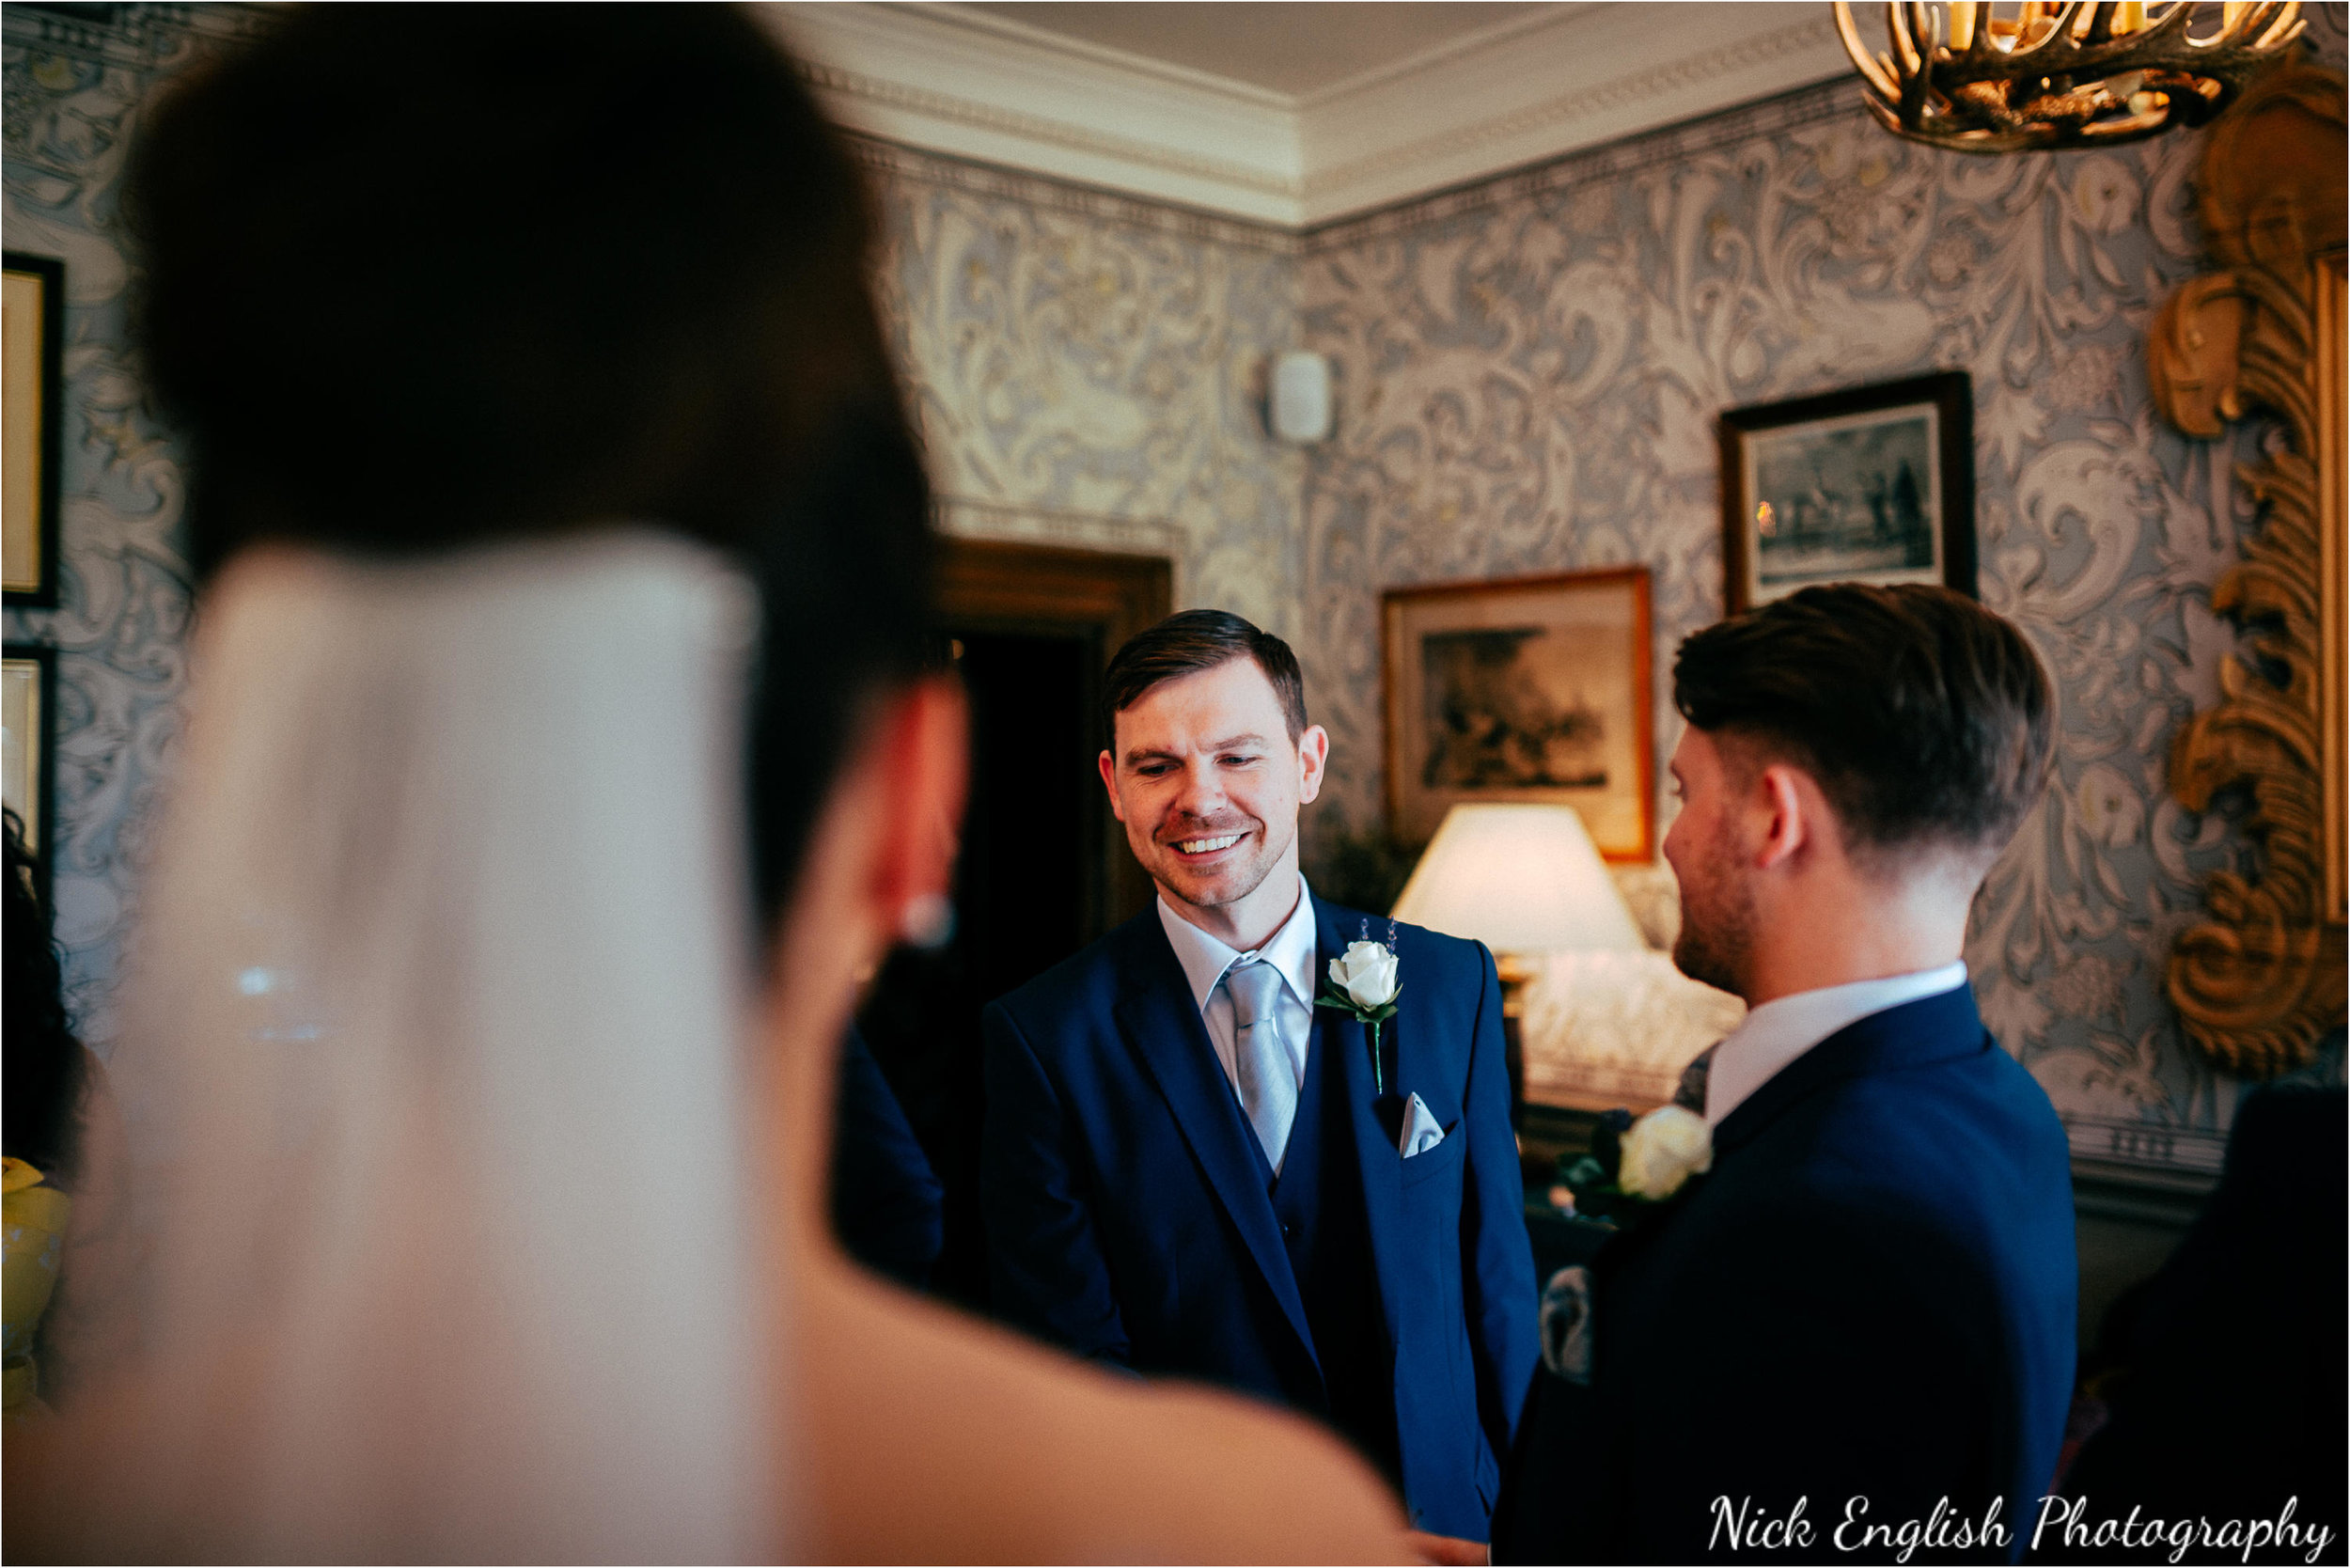 Eaves_Hall_Wedding_Photographs_Nick_English_Photography-130.jpg